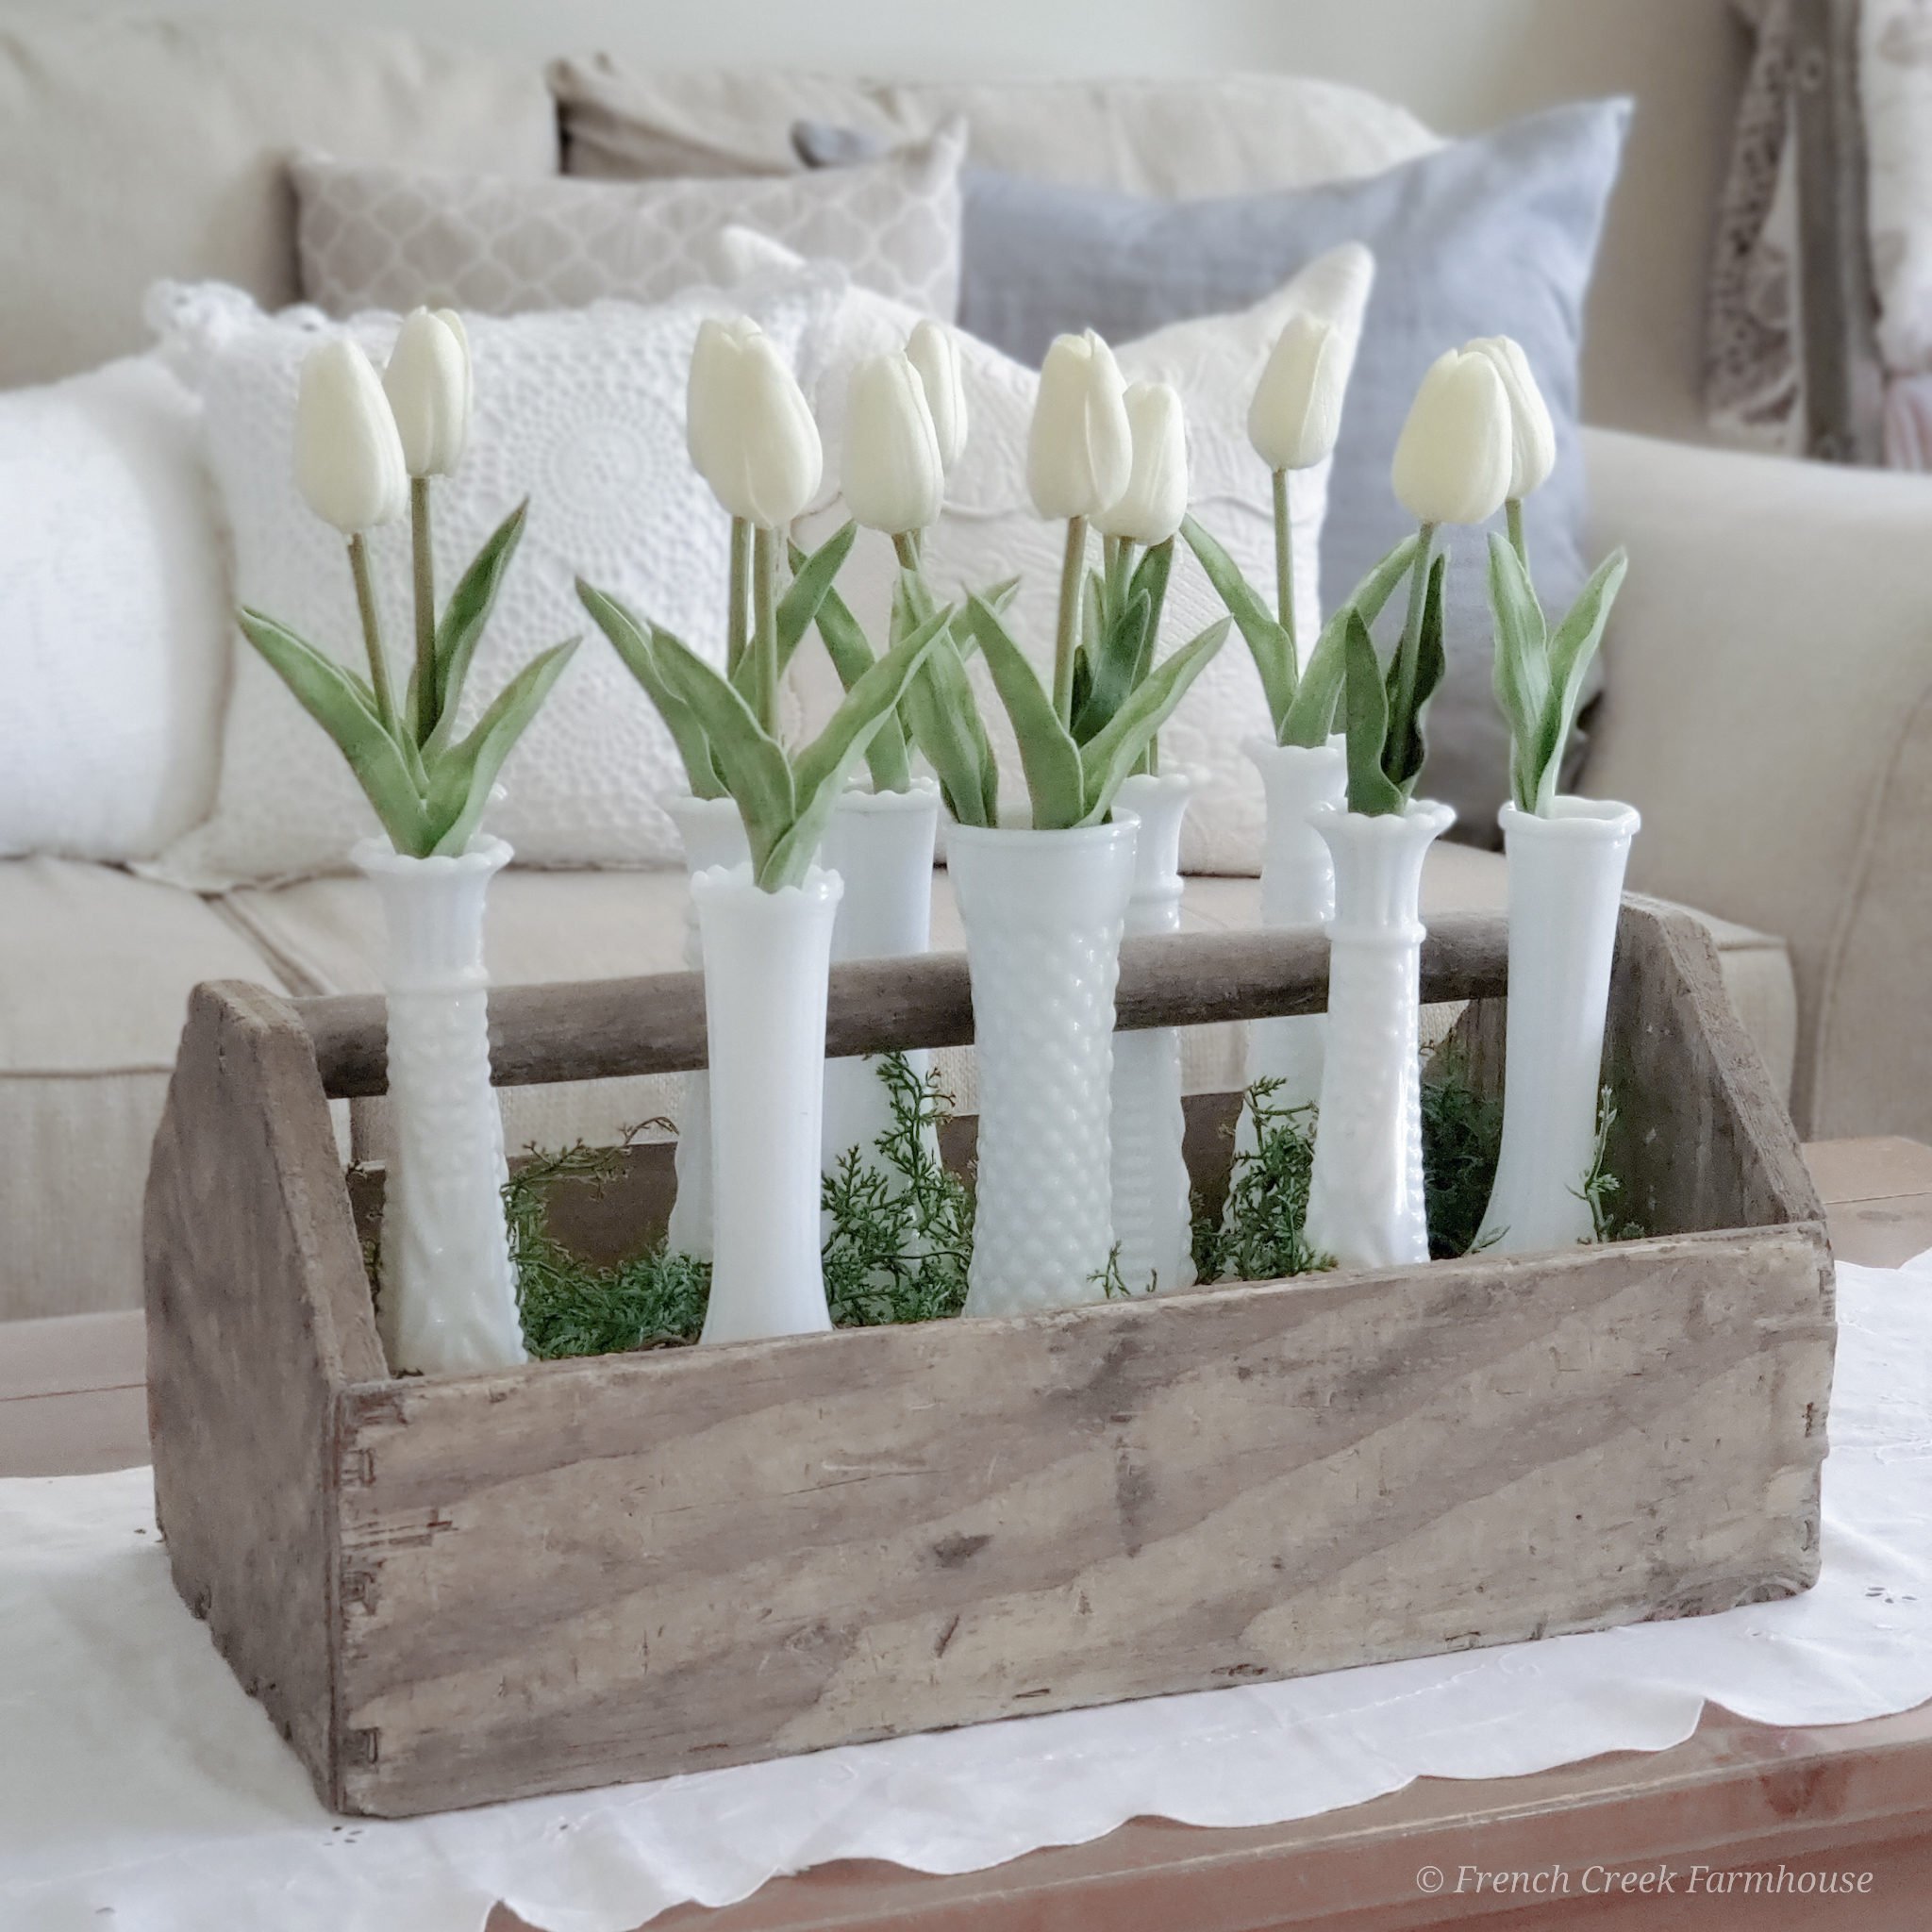 White tulips and milk glass vases in rustic wooden toolbox